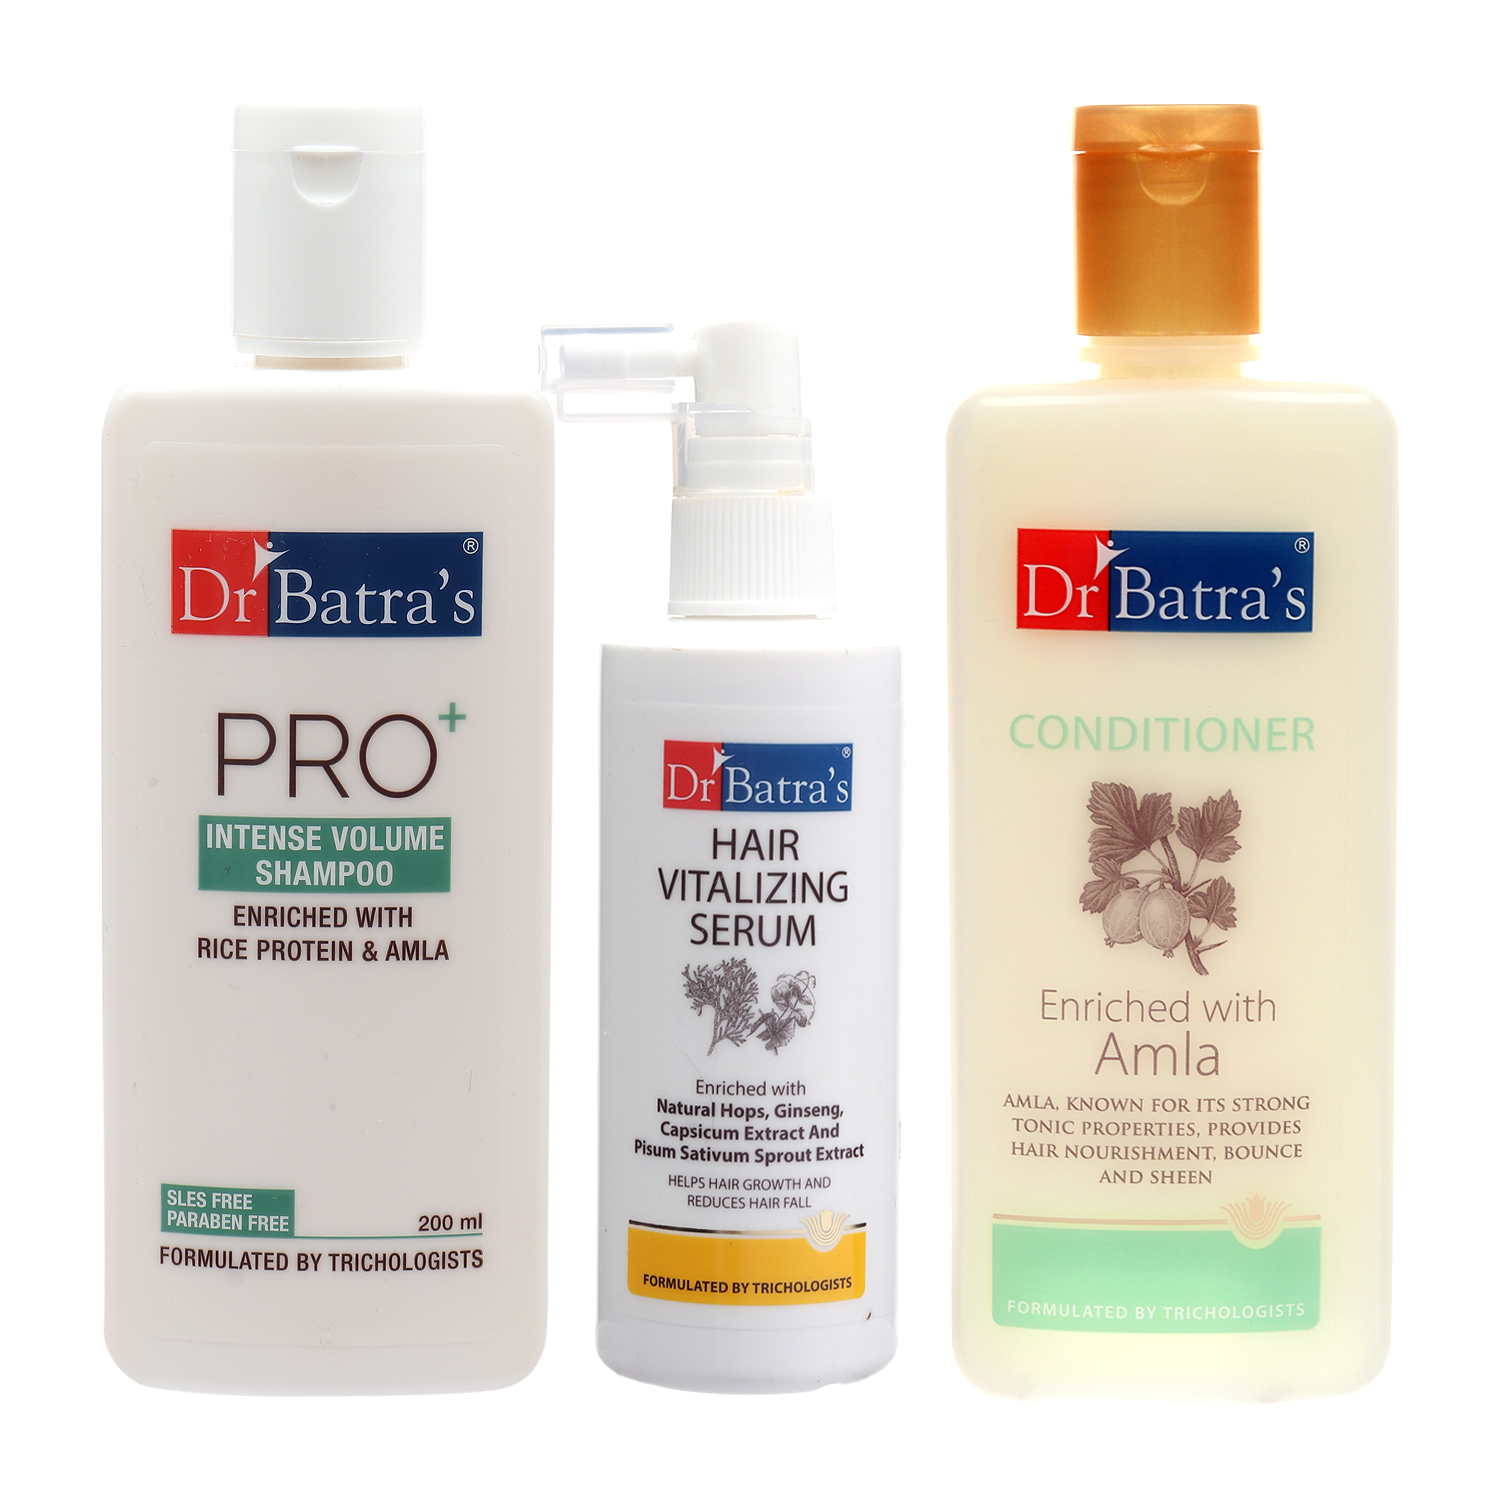 Dr Batra's | Dr Batra's Pro+Intense Volume Shampoo 200ml, Conditioner 200 ml and Hair Vitalizing Serum 125 ml (Pack of 3 Men and Women)